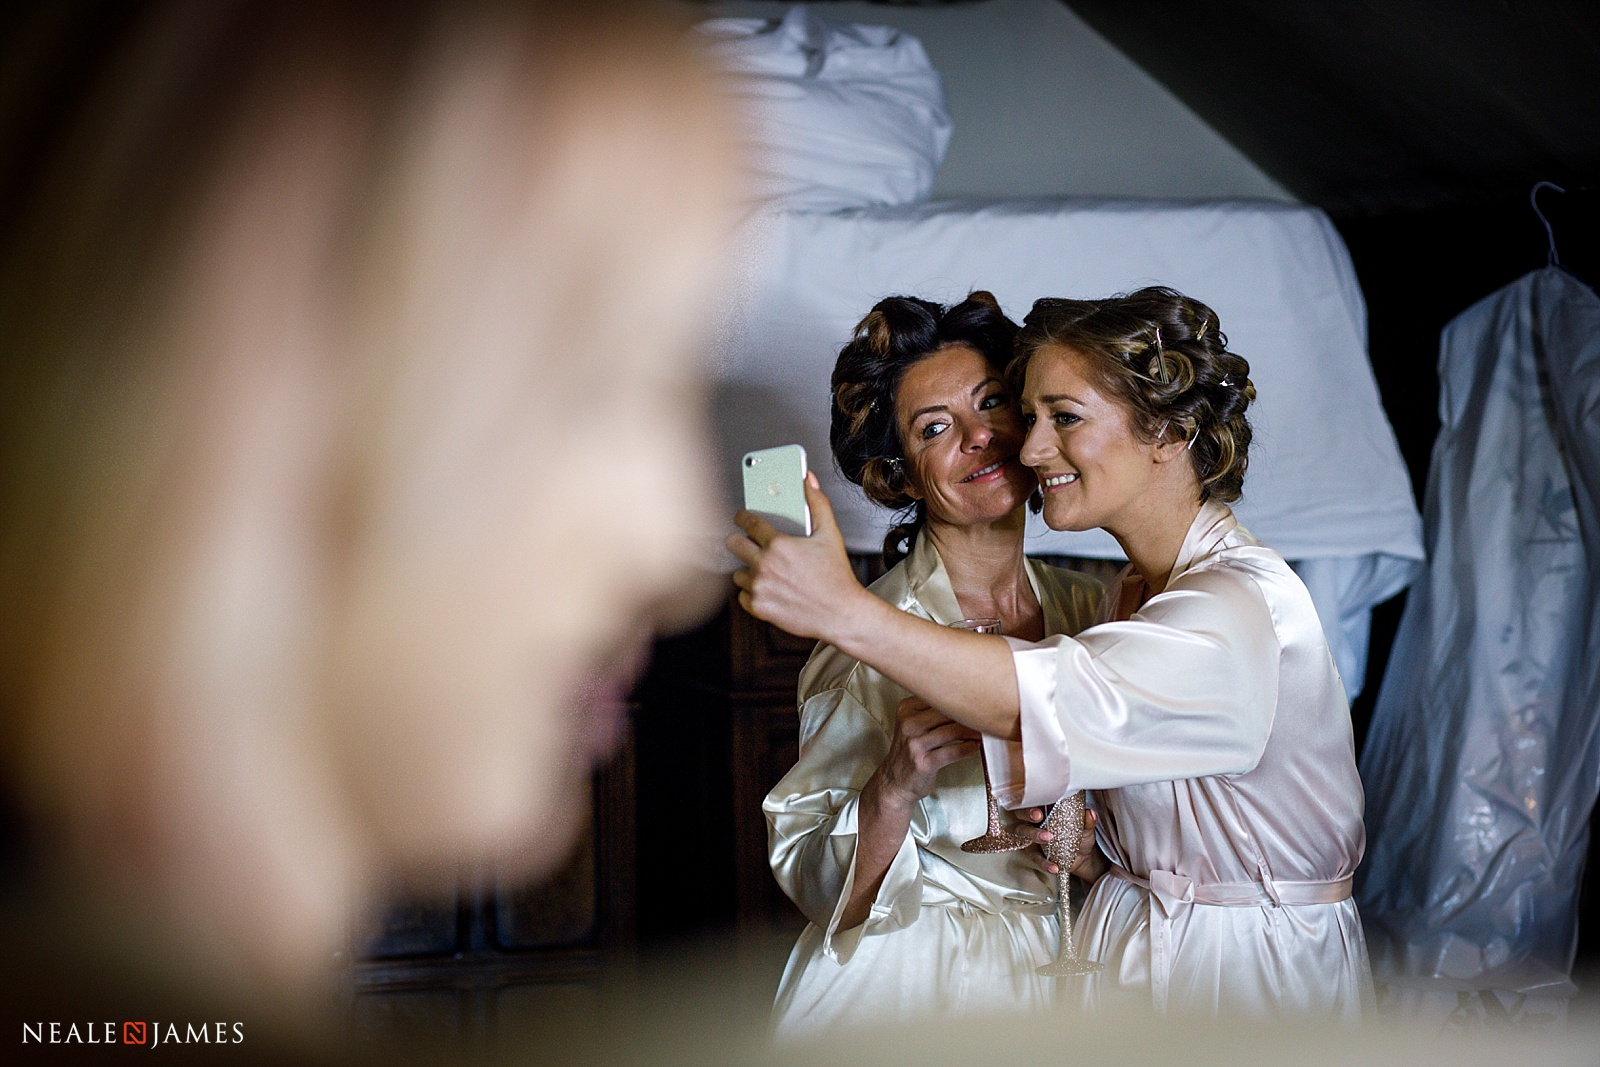 A colour photo of a wedding selfie